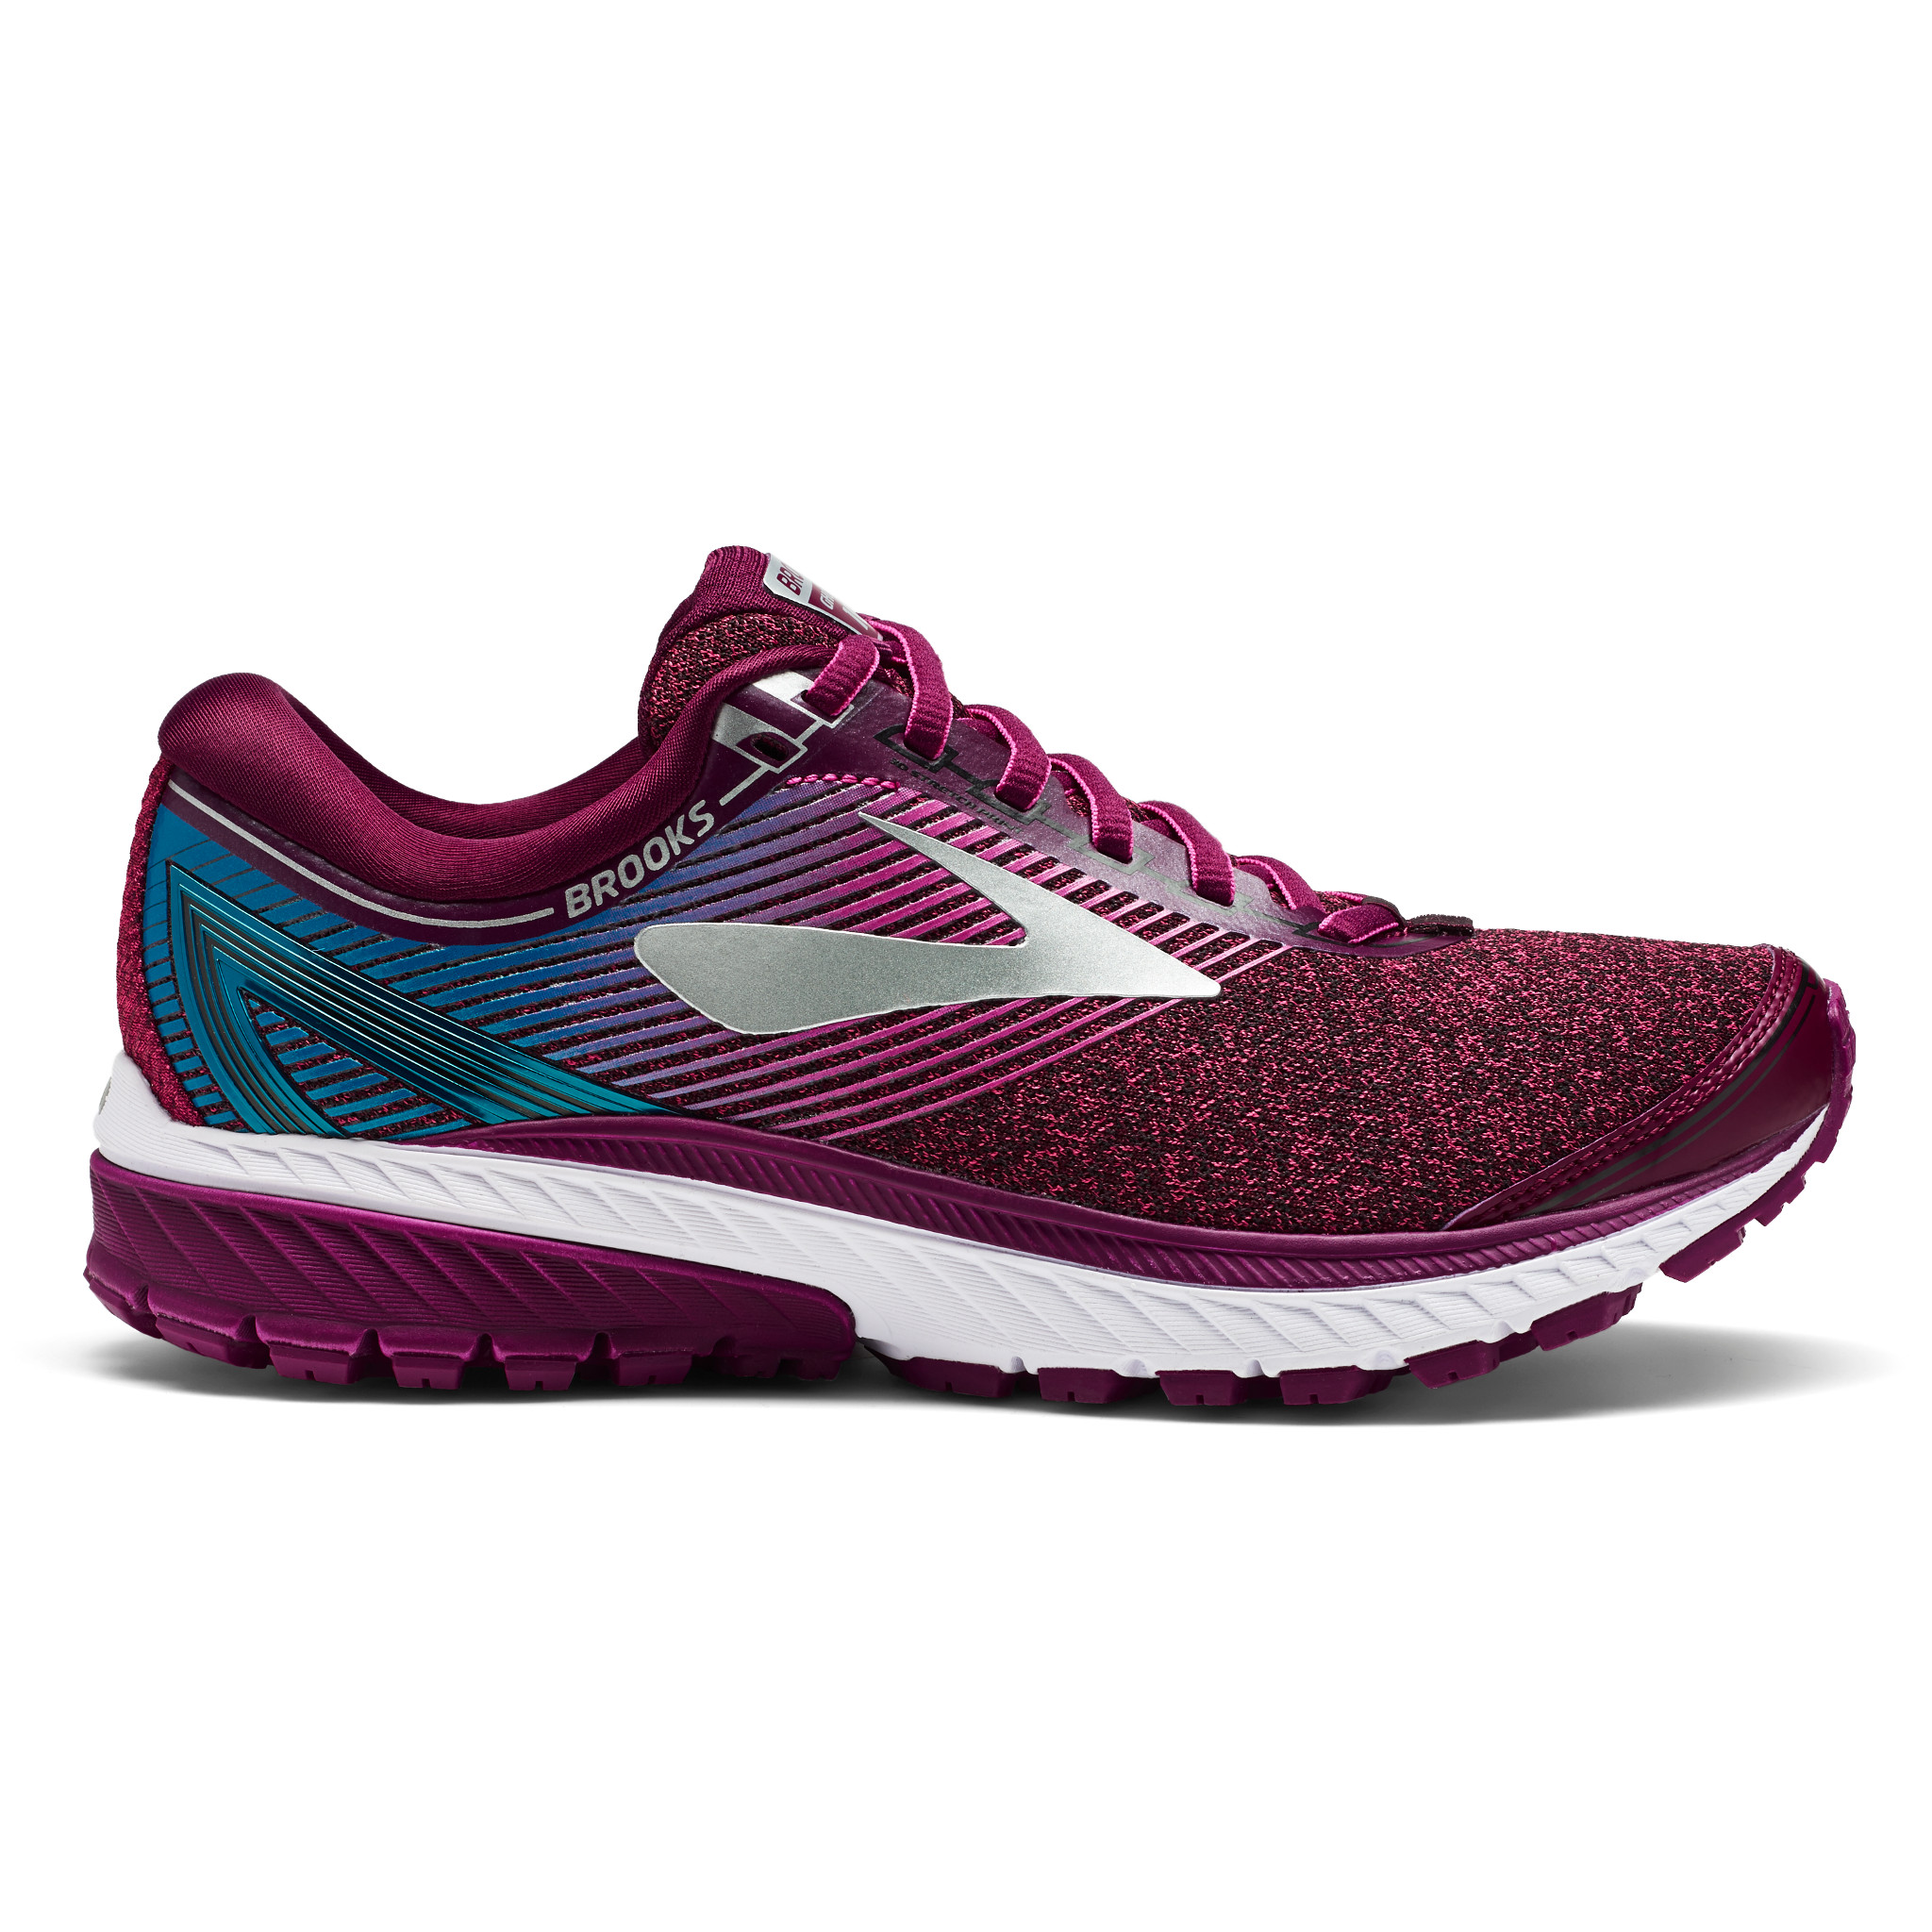 Stretch New Balance Shoes